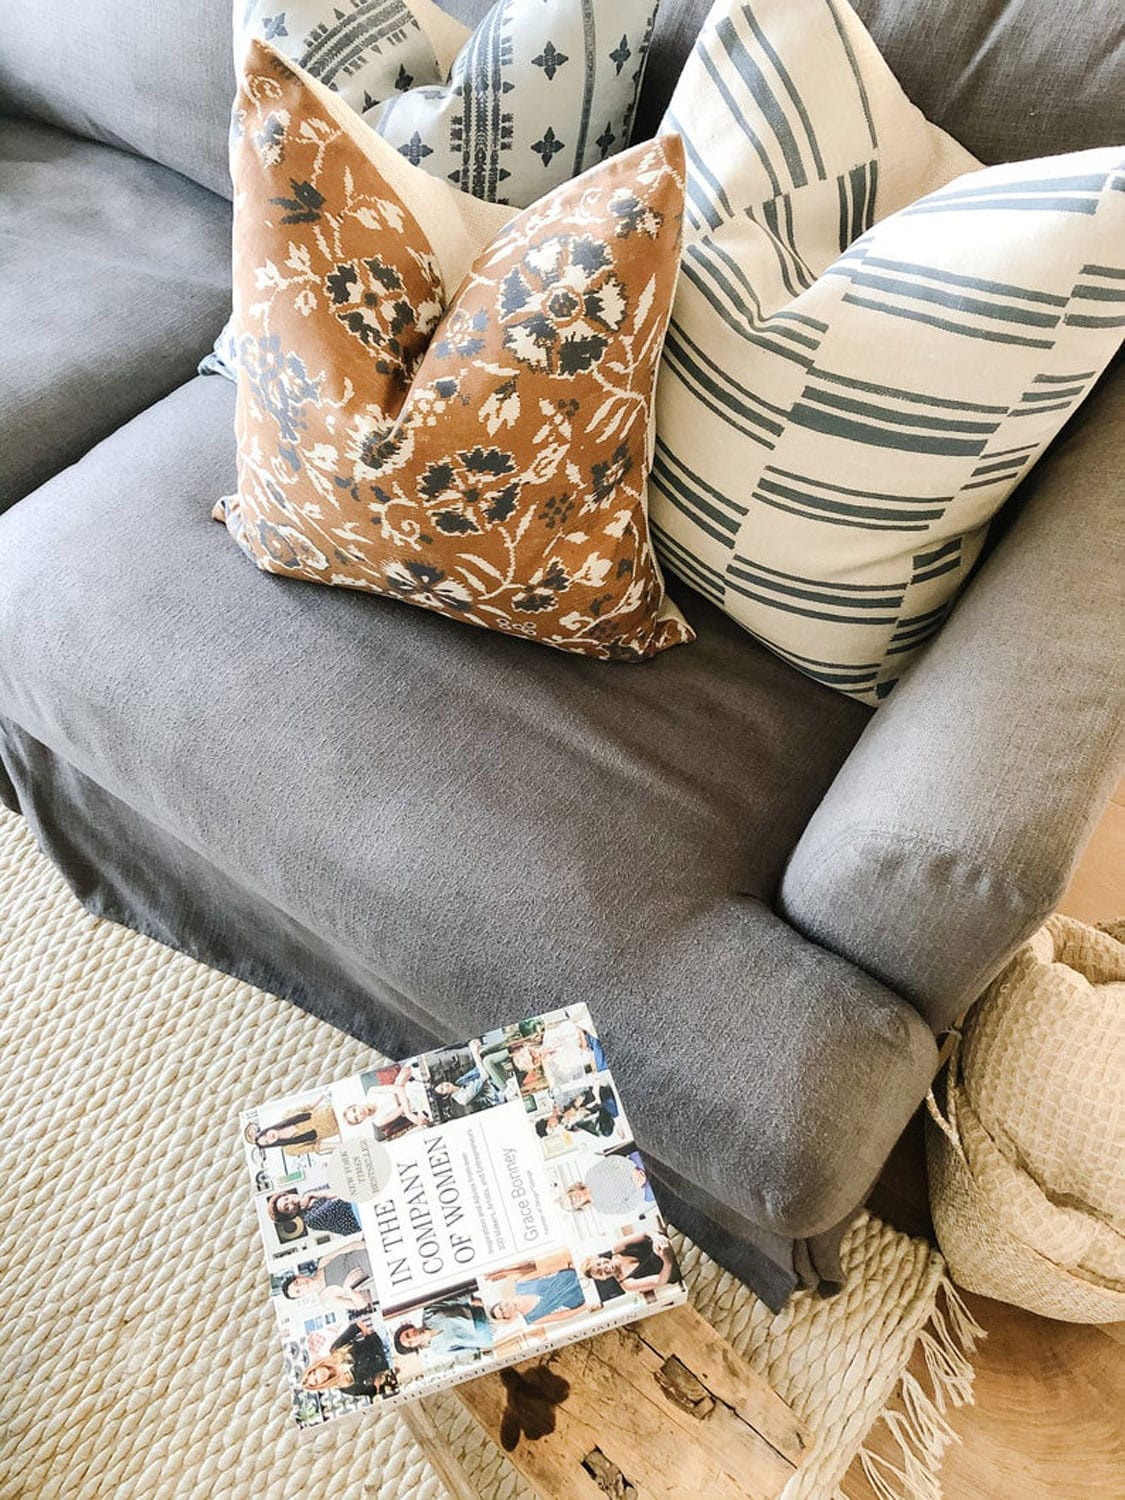 Pillows and book on soap and stool